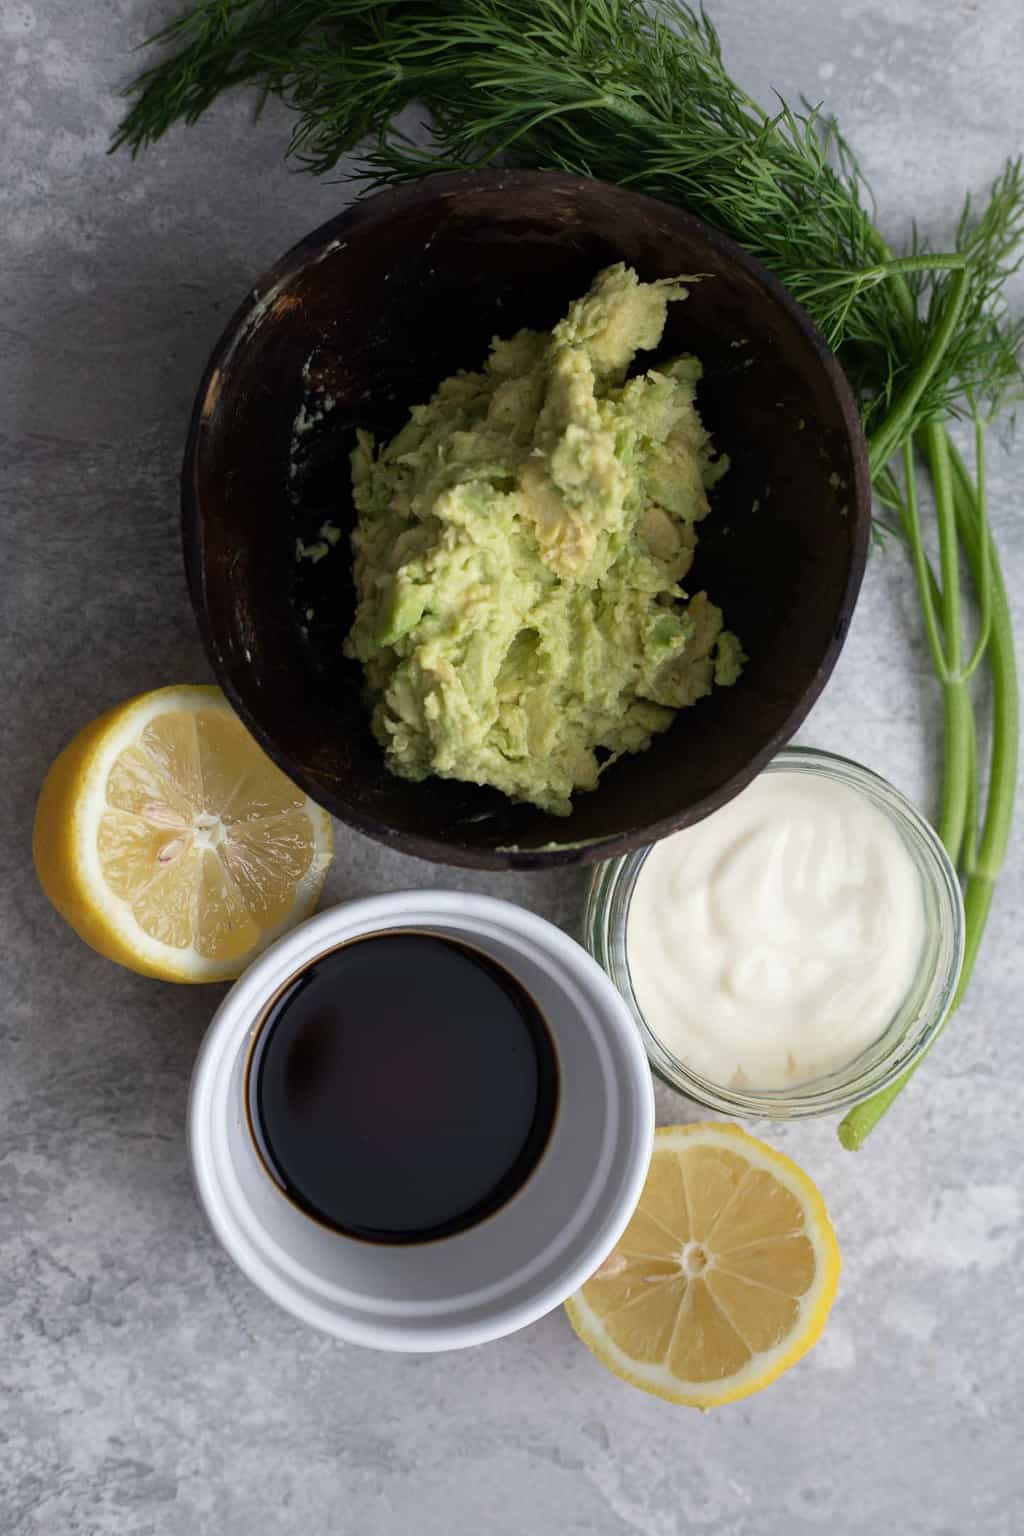 Ingredients for an avocado sauce